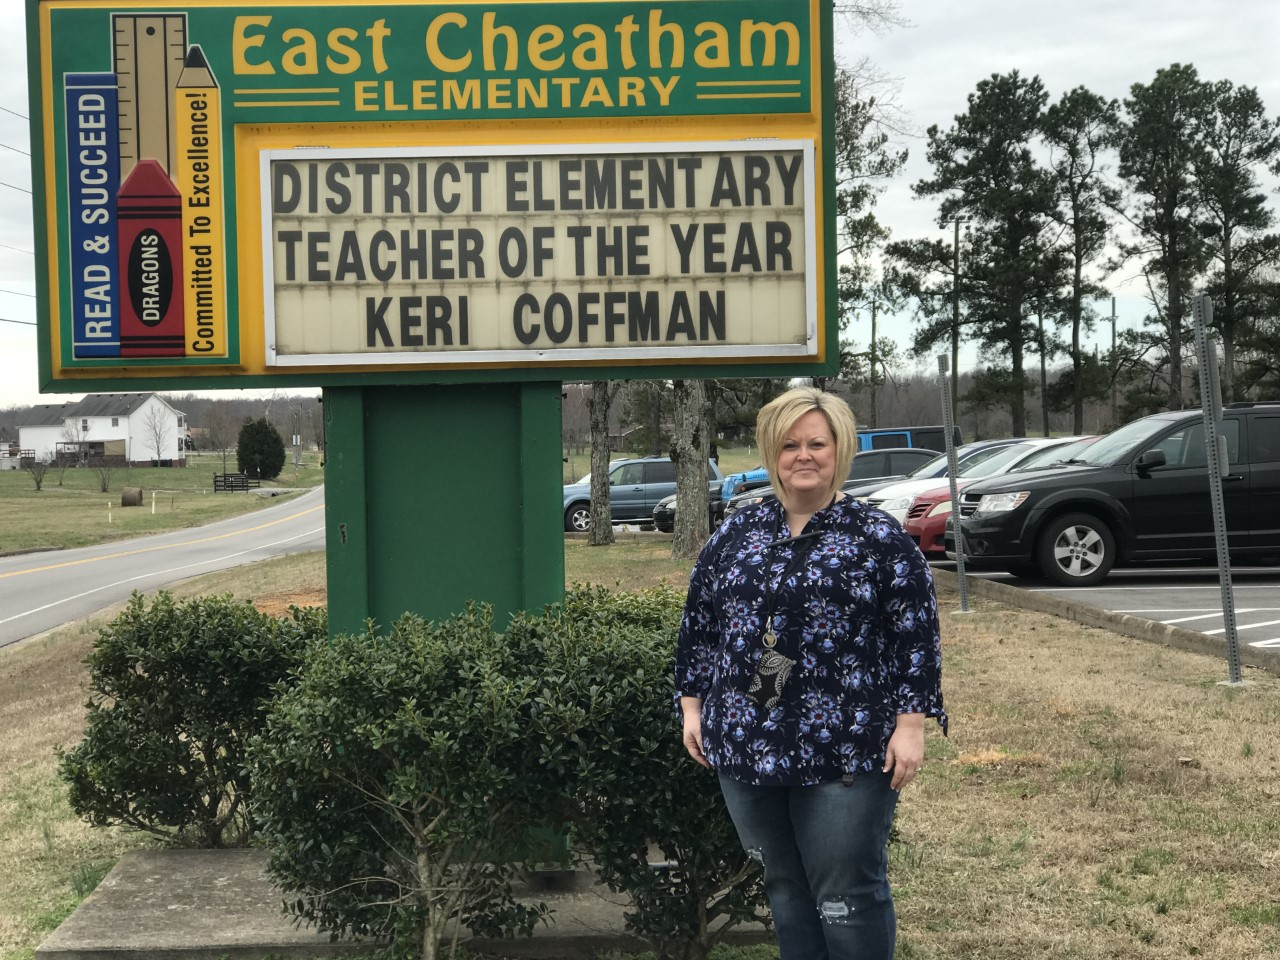 Keri Coffman, DISTRICT Teacher of the Year!!